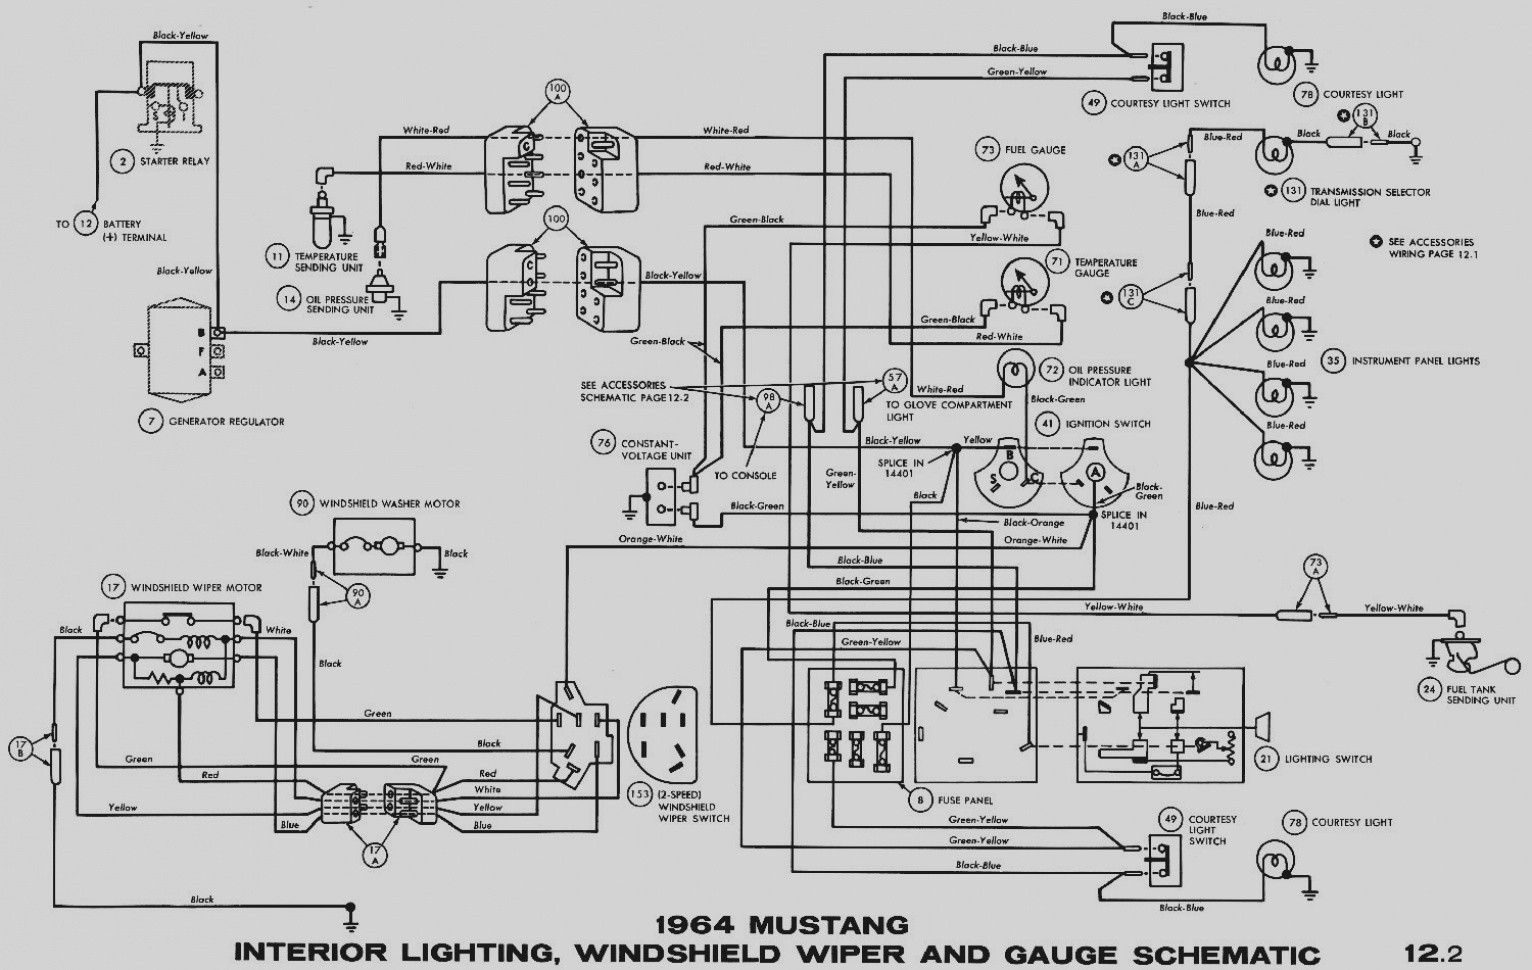 68 Mustang Headlight Wiring Diagram List Of Schematic Circuit 12 Volt Light Fog Lamp 1975 F100 Diagrams Auto Electrical Rh Sistemagroup Me Switch